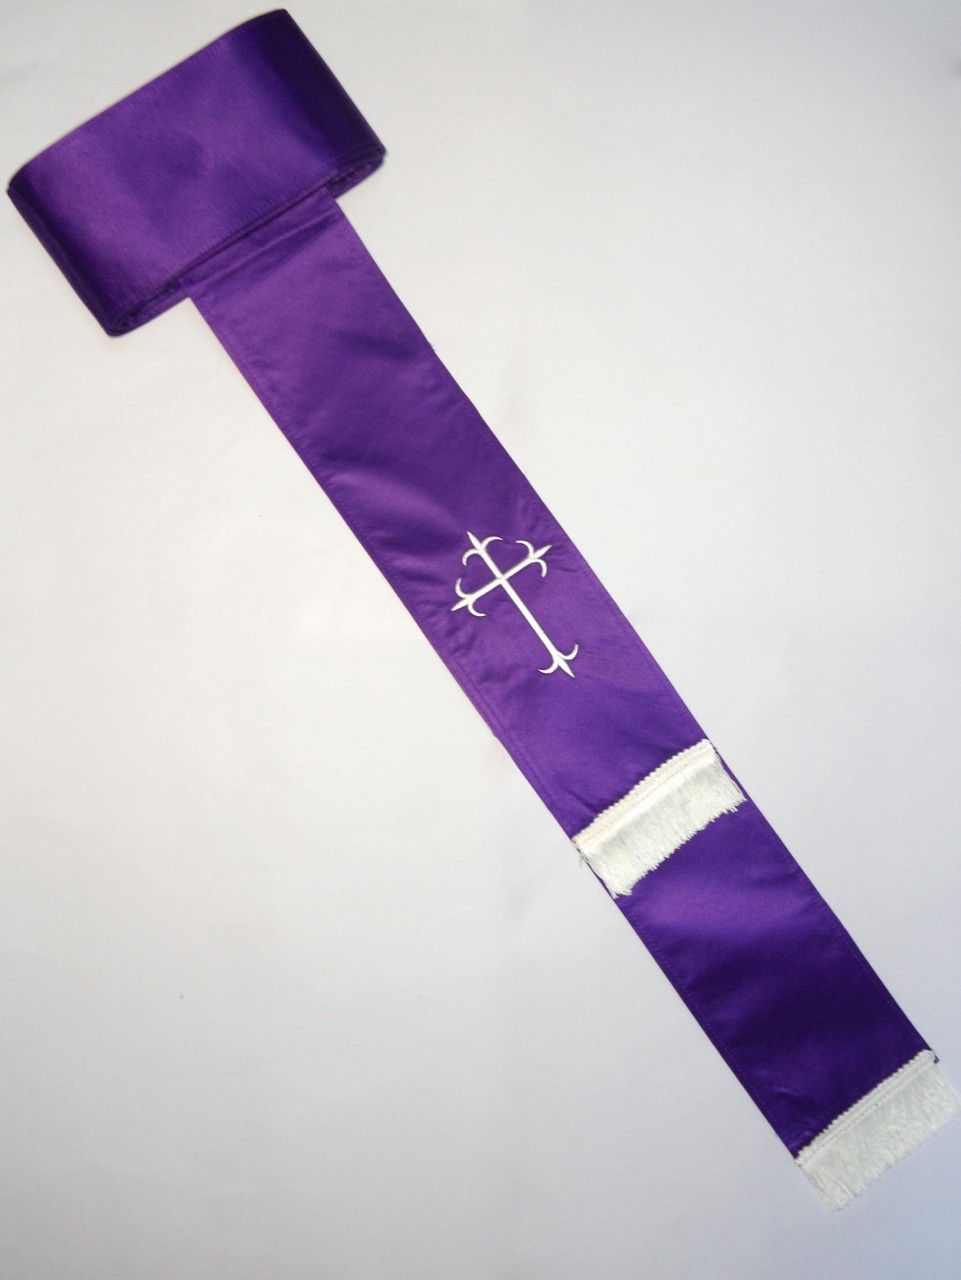 Band Cincture Belt - Purple/Creme Cross